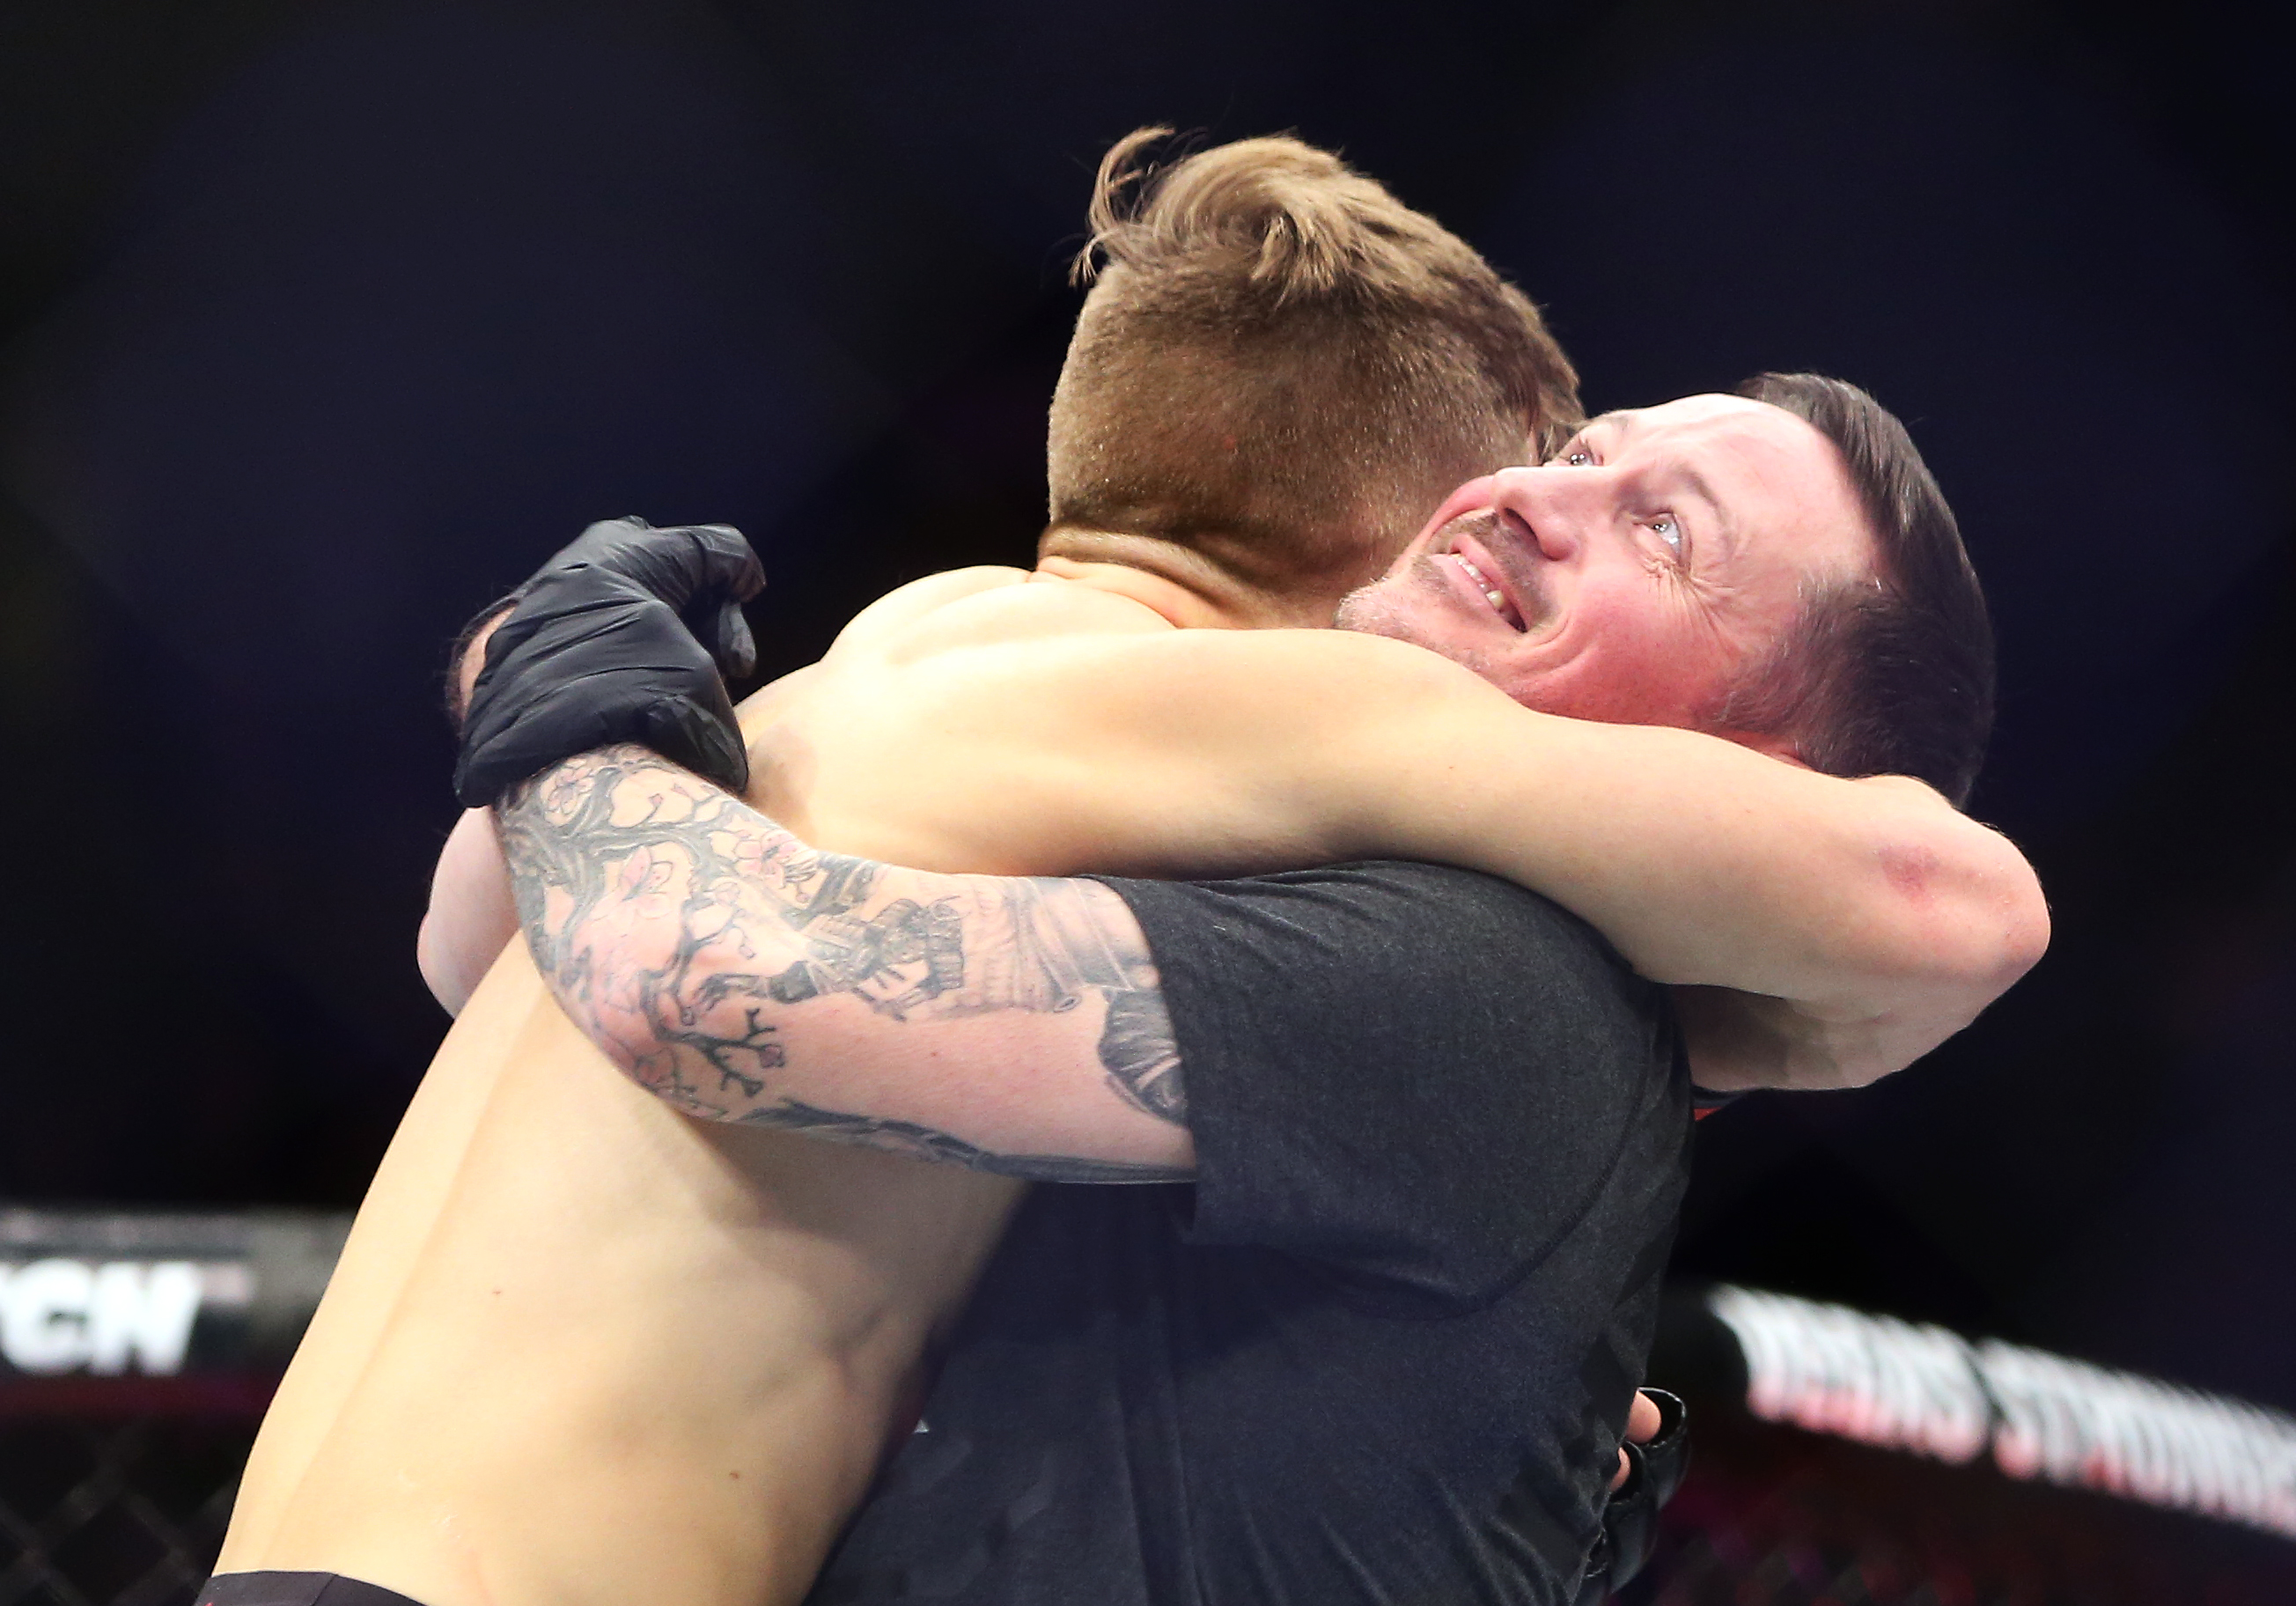 TORONTO, ON - DECEMBER 8:  Brad Katona of Canada celebrates with coach John Kavanagh after victory against Matthew Lopez of the United States in a bantamweight bout during the UFC 231 event at Scotiabank Arena on December 8, 2018 in Toronto, Canada.  (Photo by Vaughn Ridley/Getty Images)